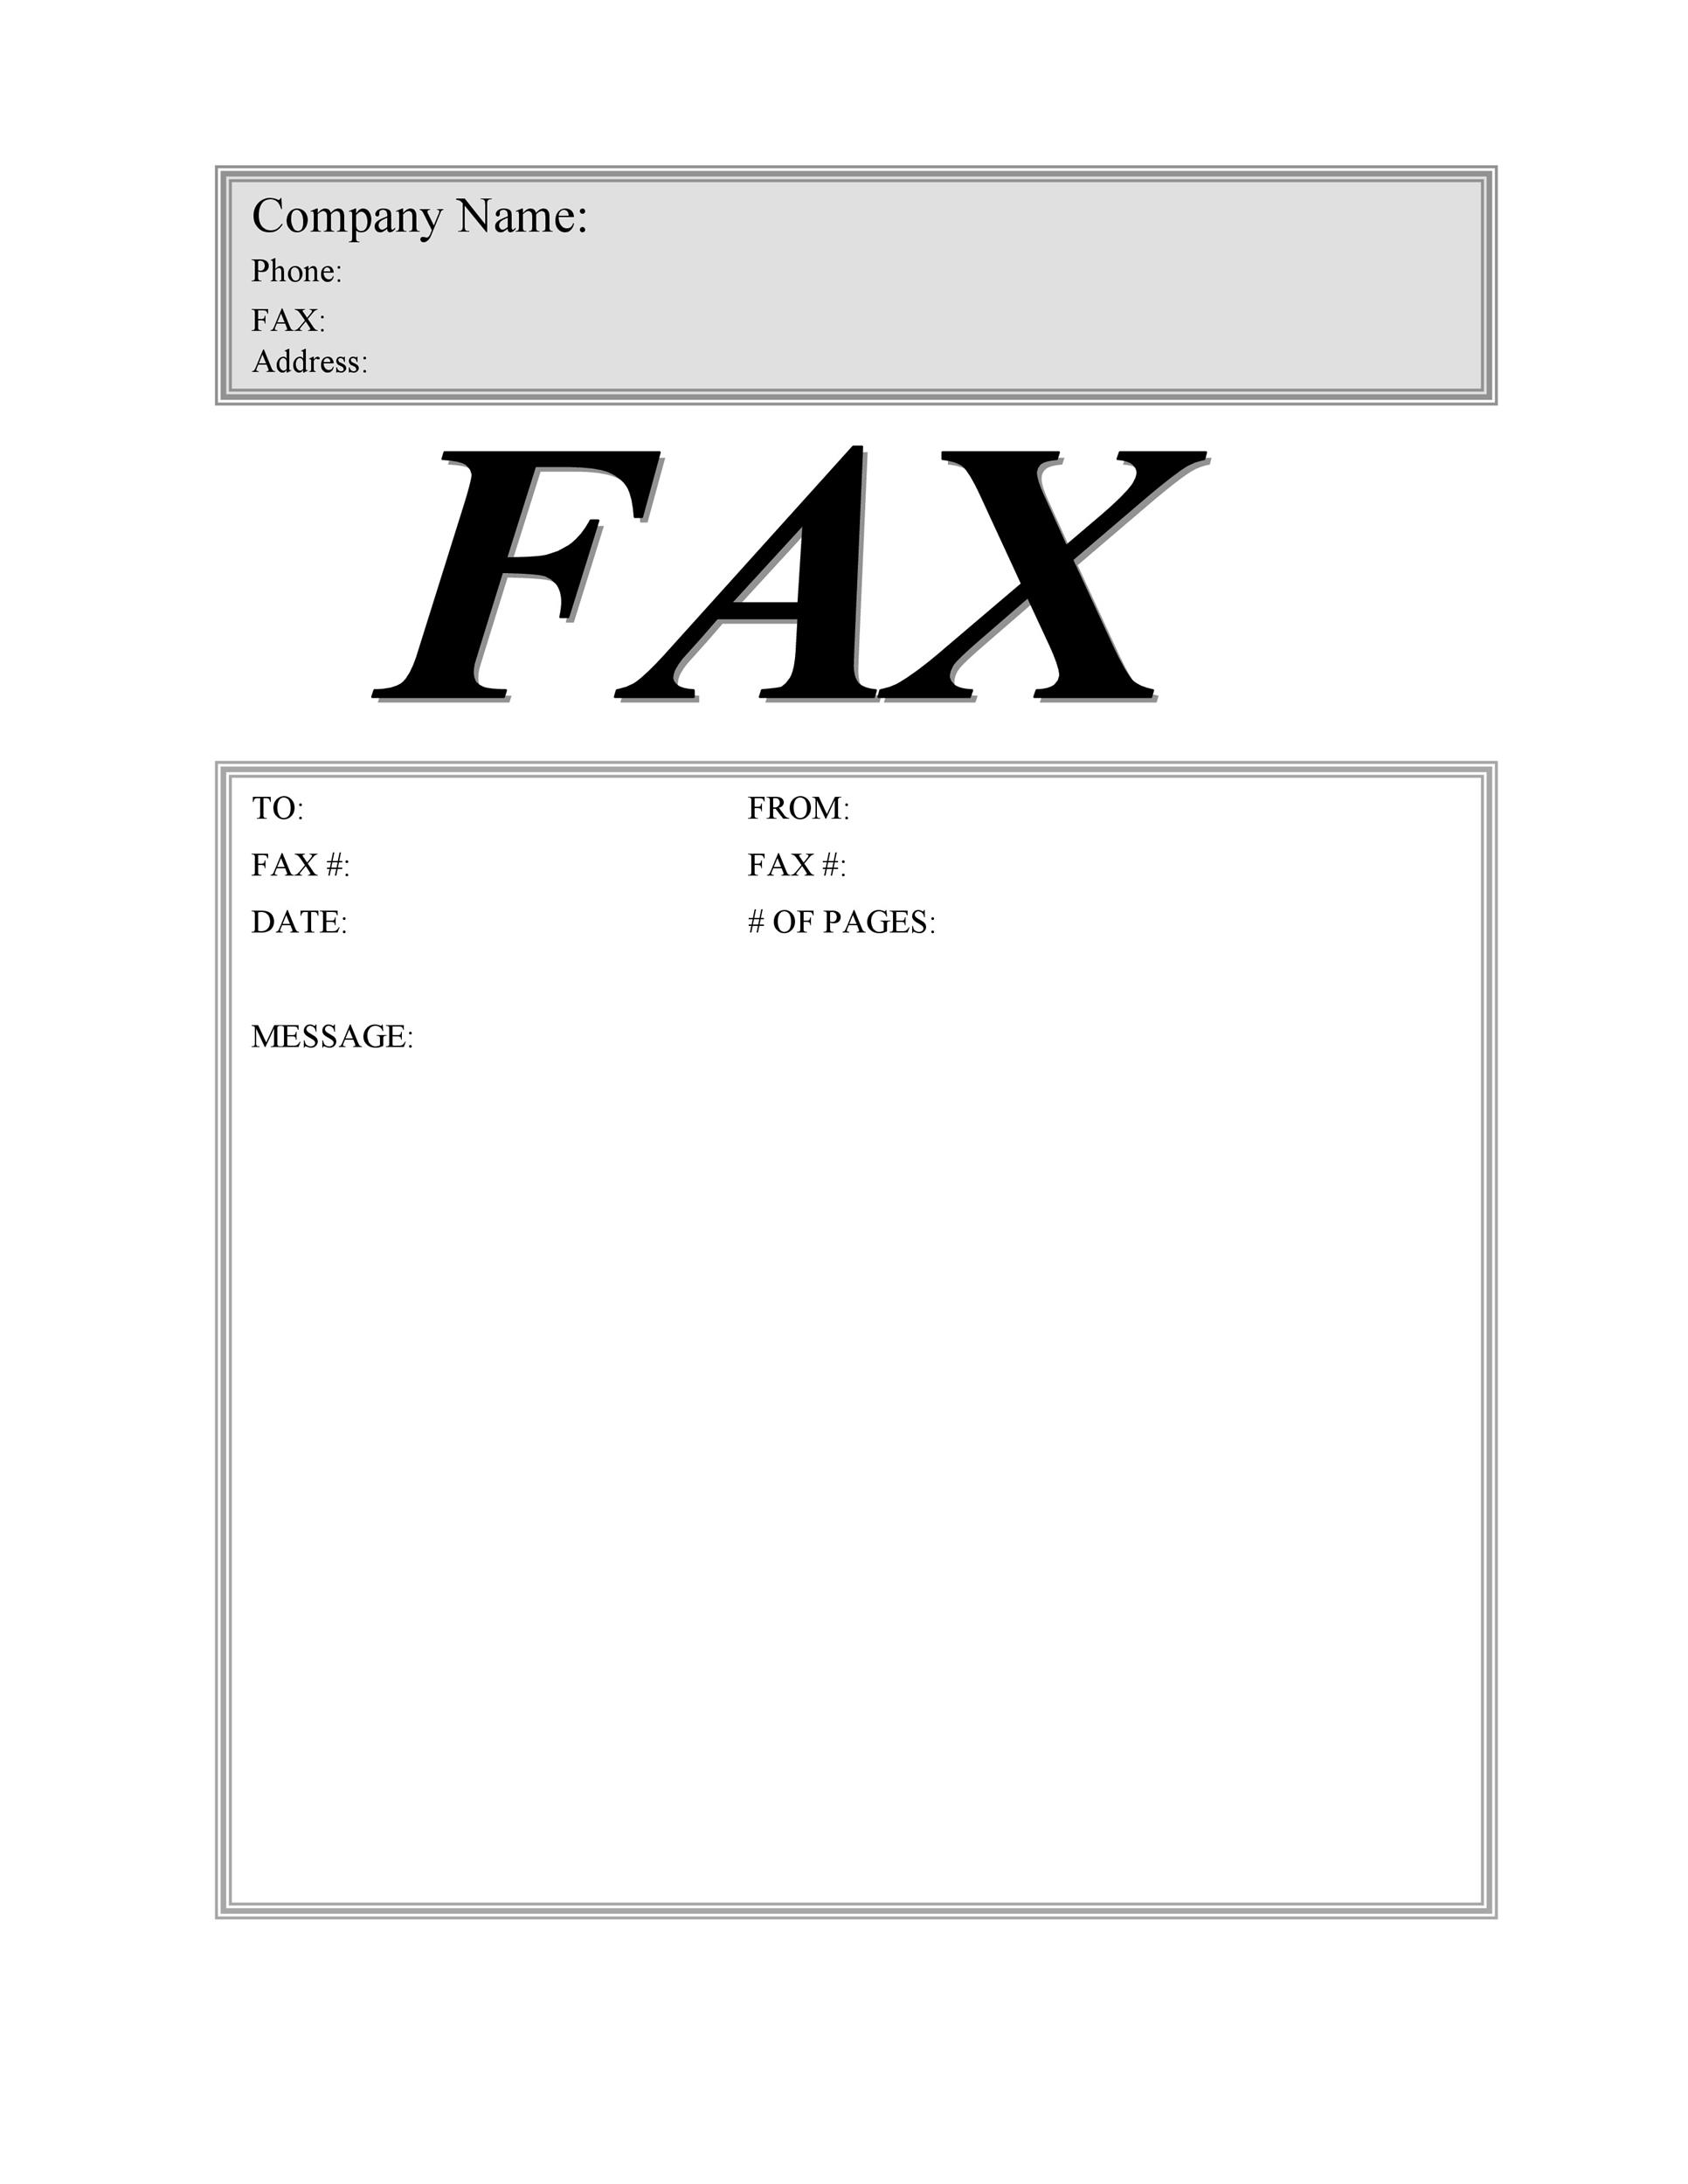 fax cover sheet 13 free word pdf documents download free